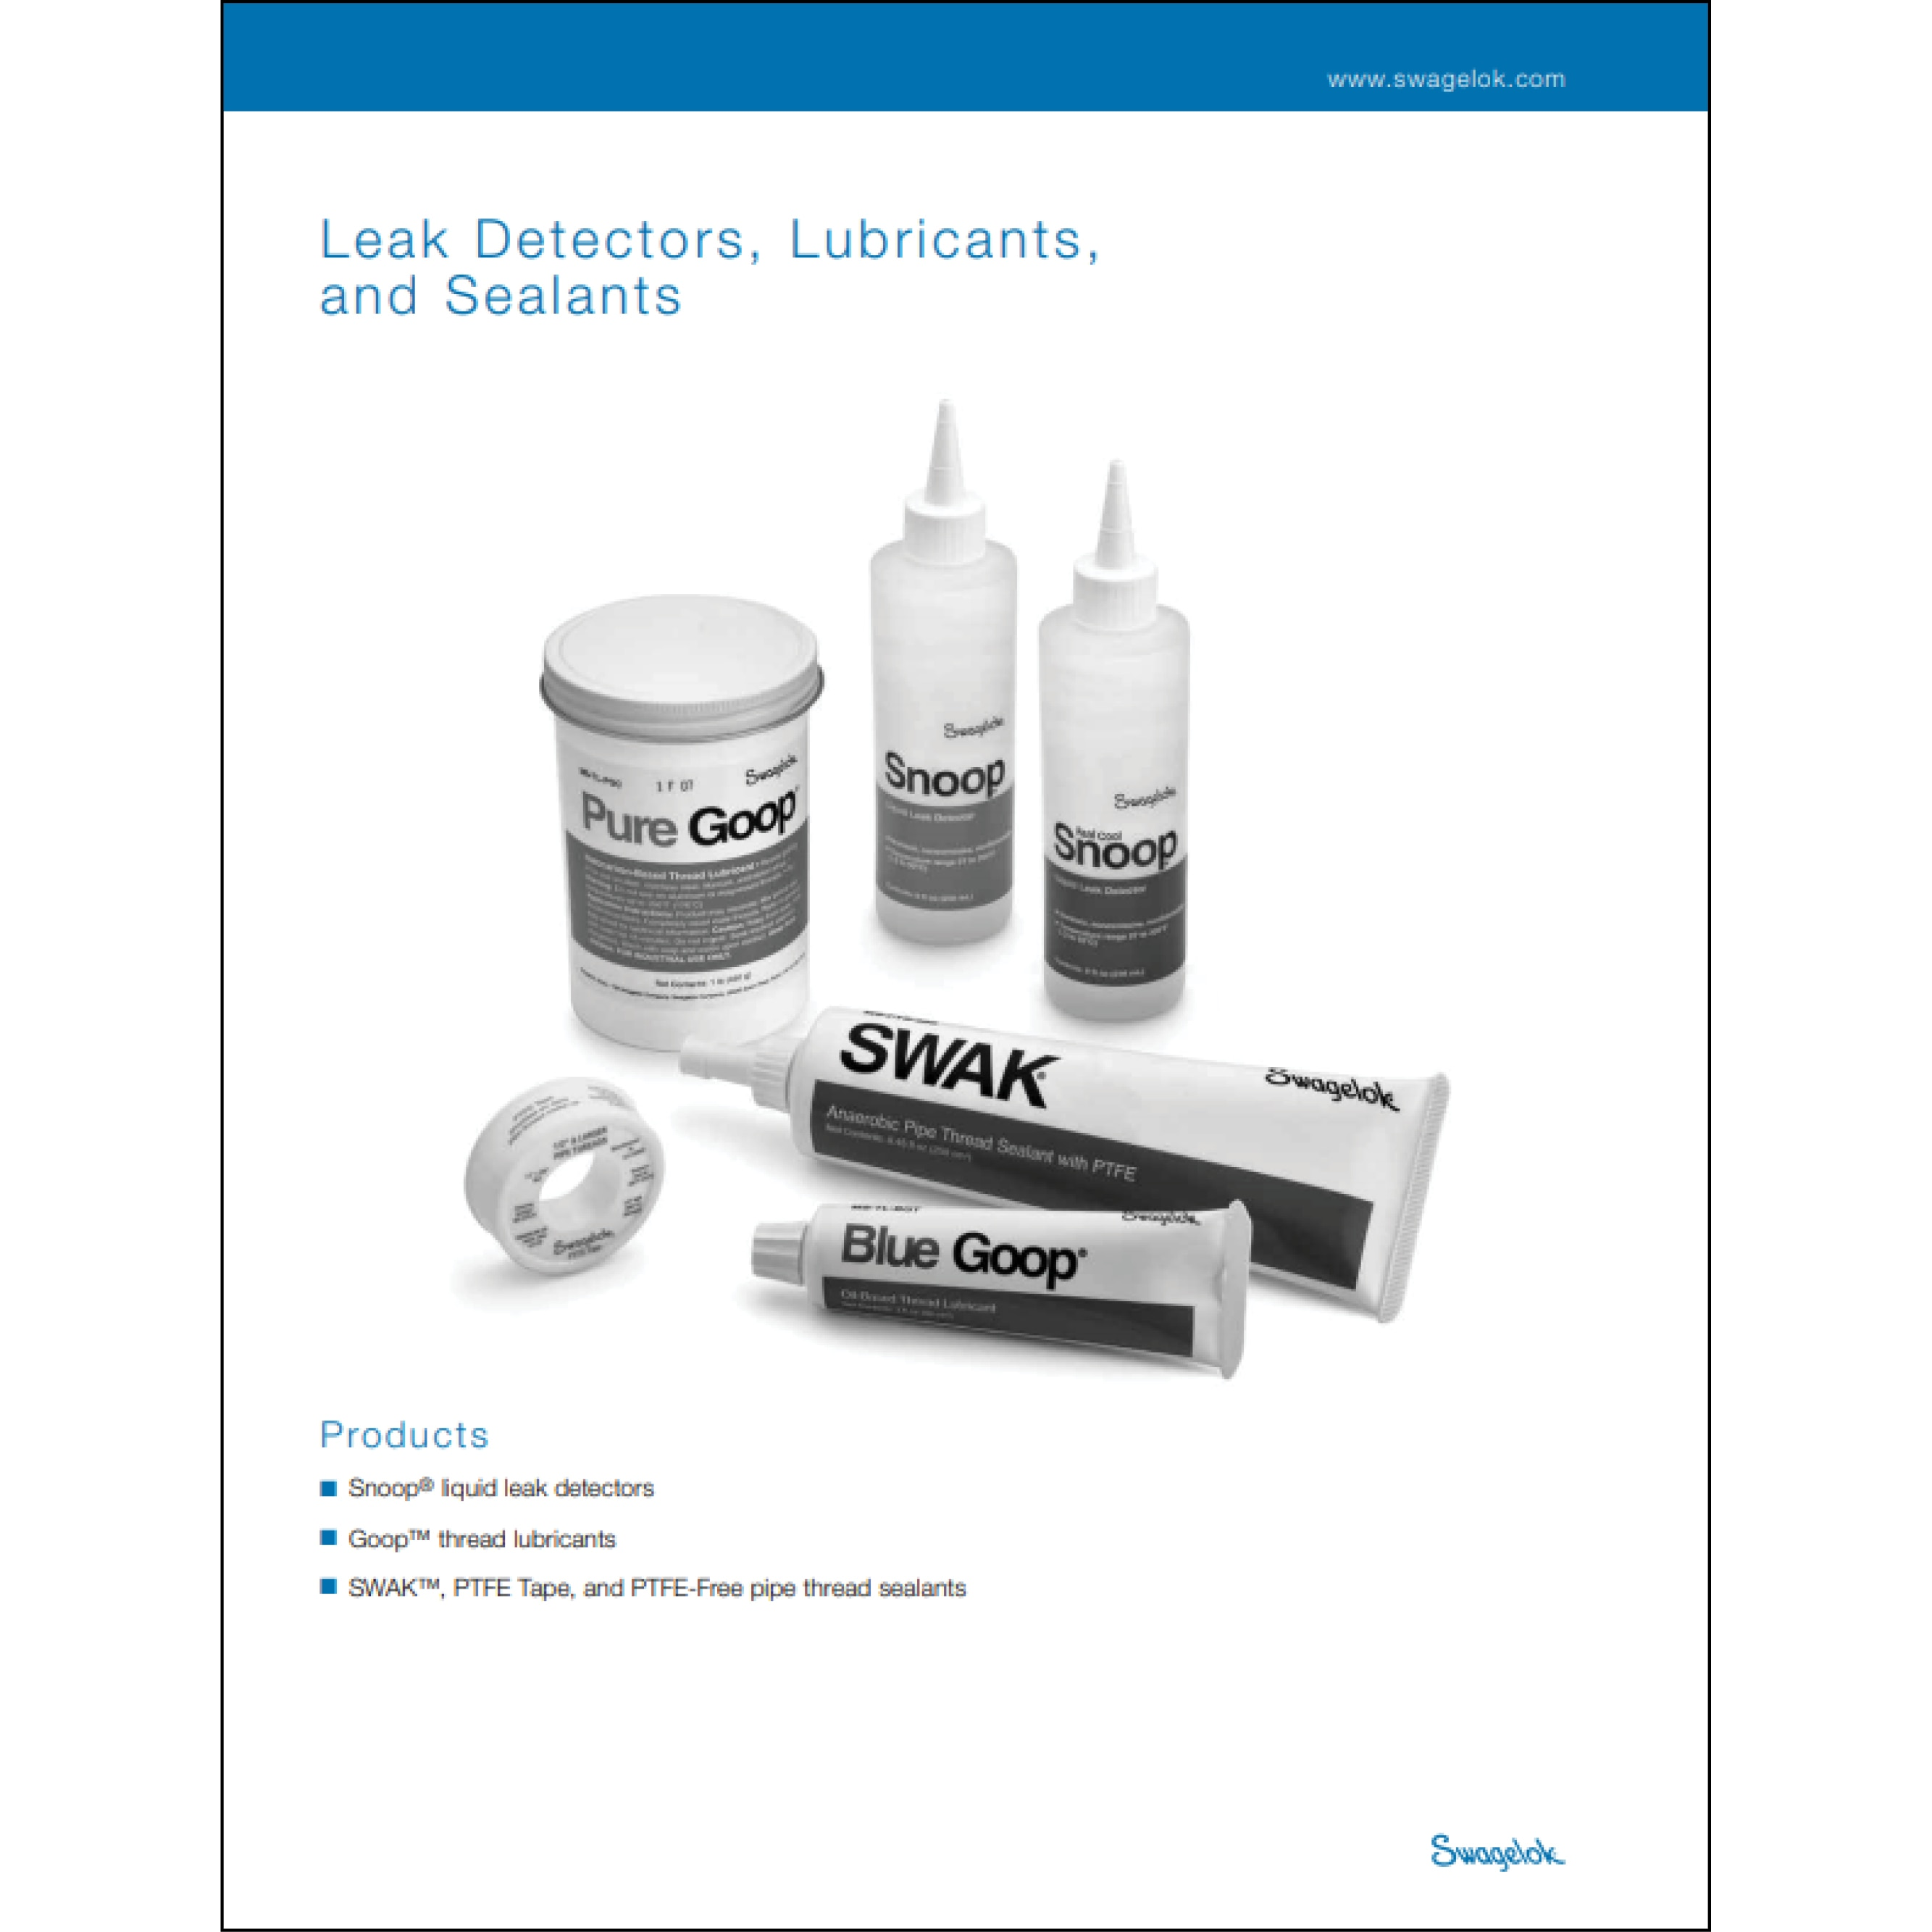 Leak Detectors, Lubricants, and Sealants Catalog